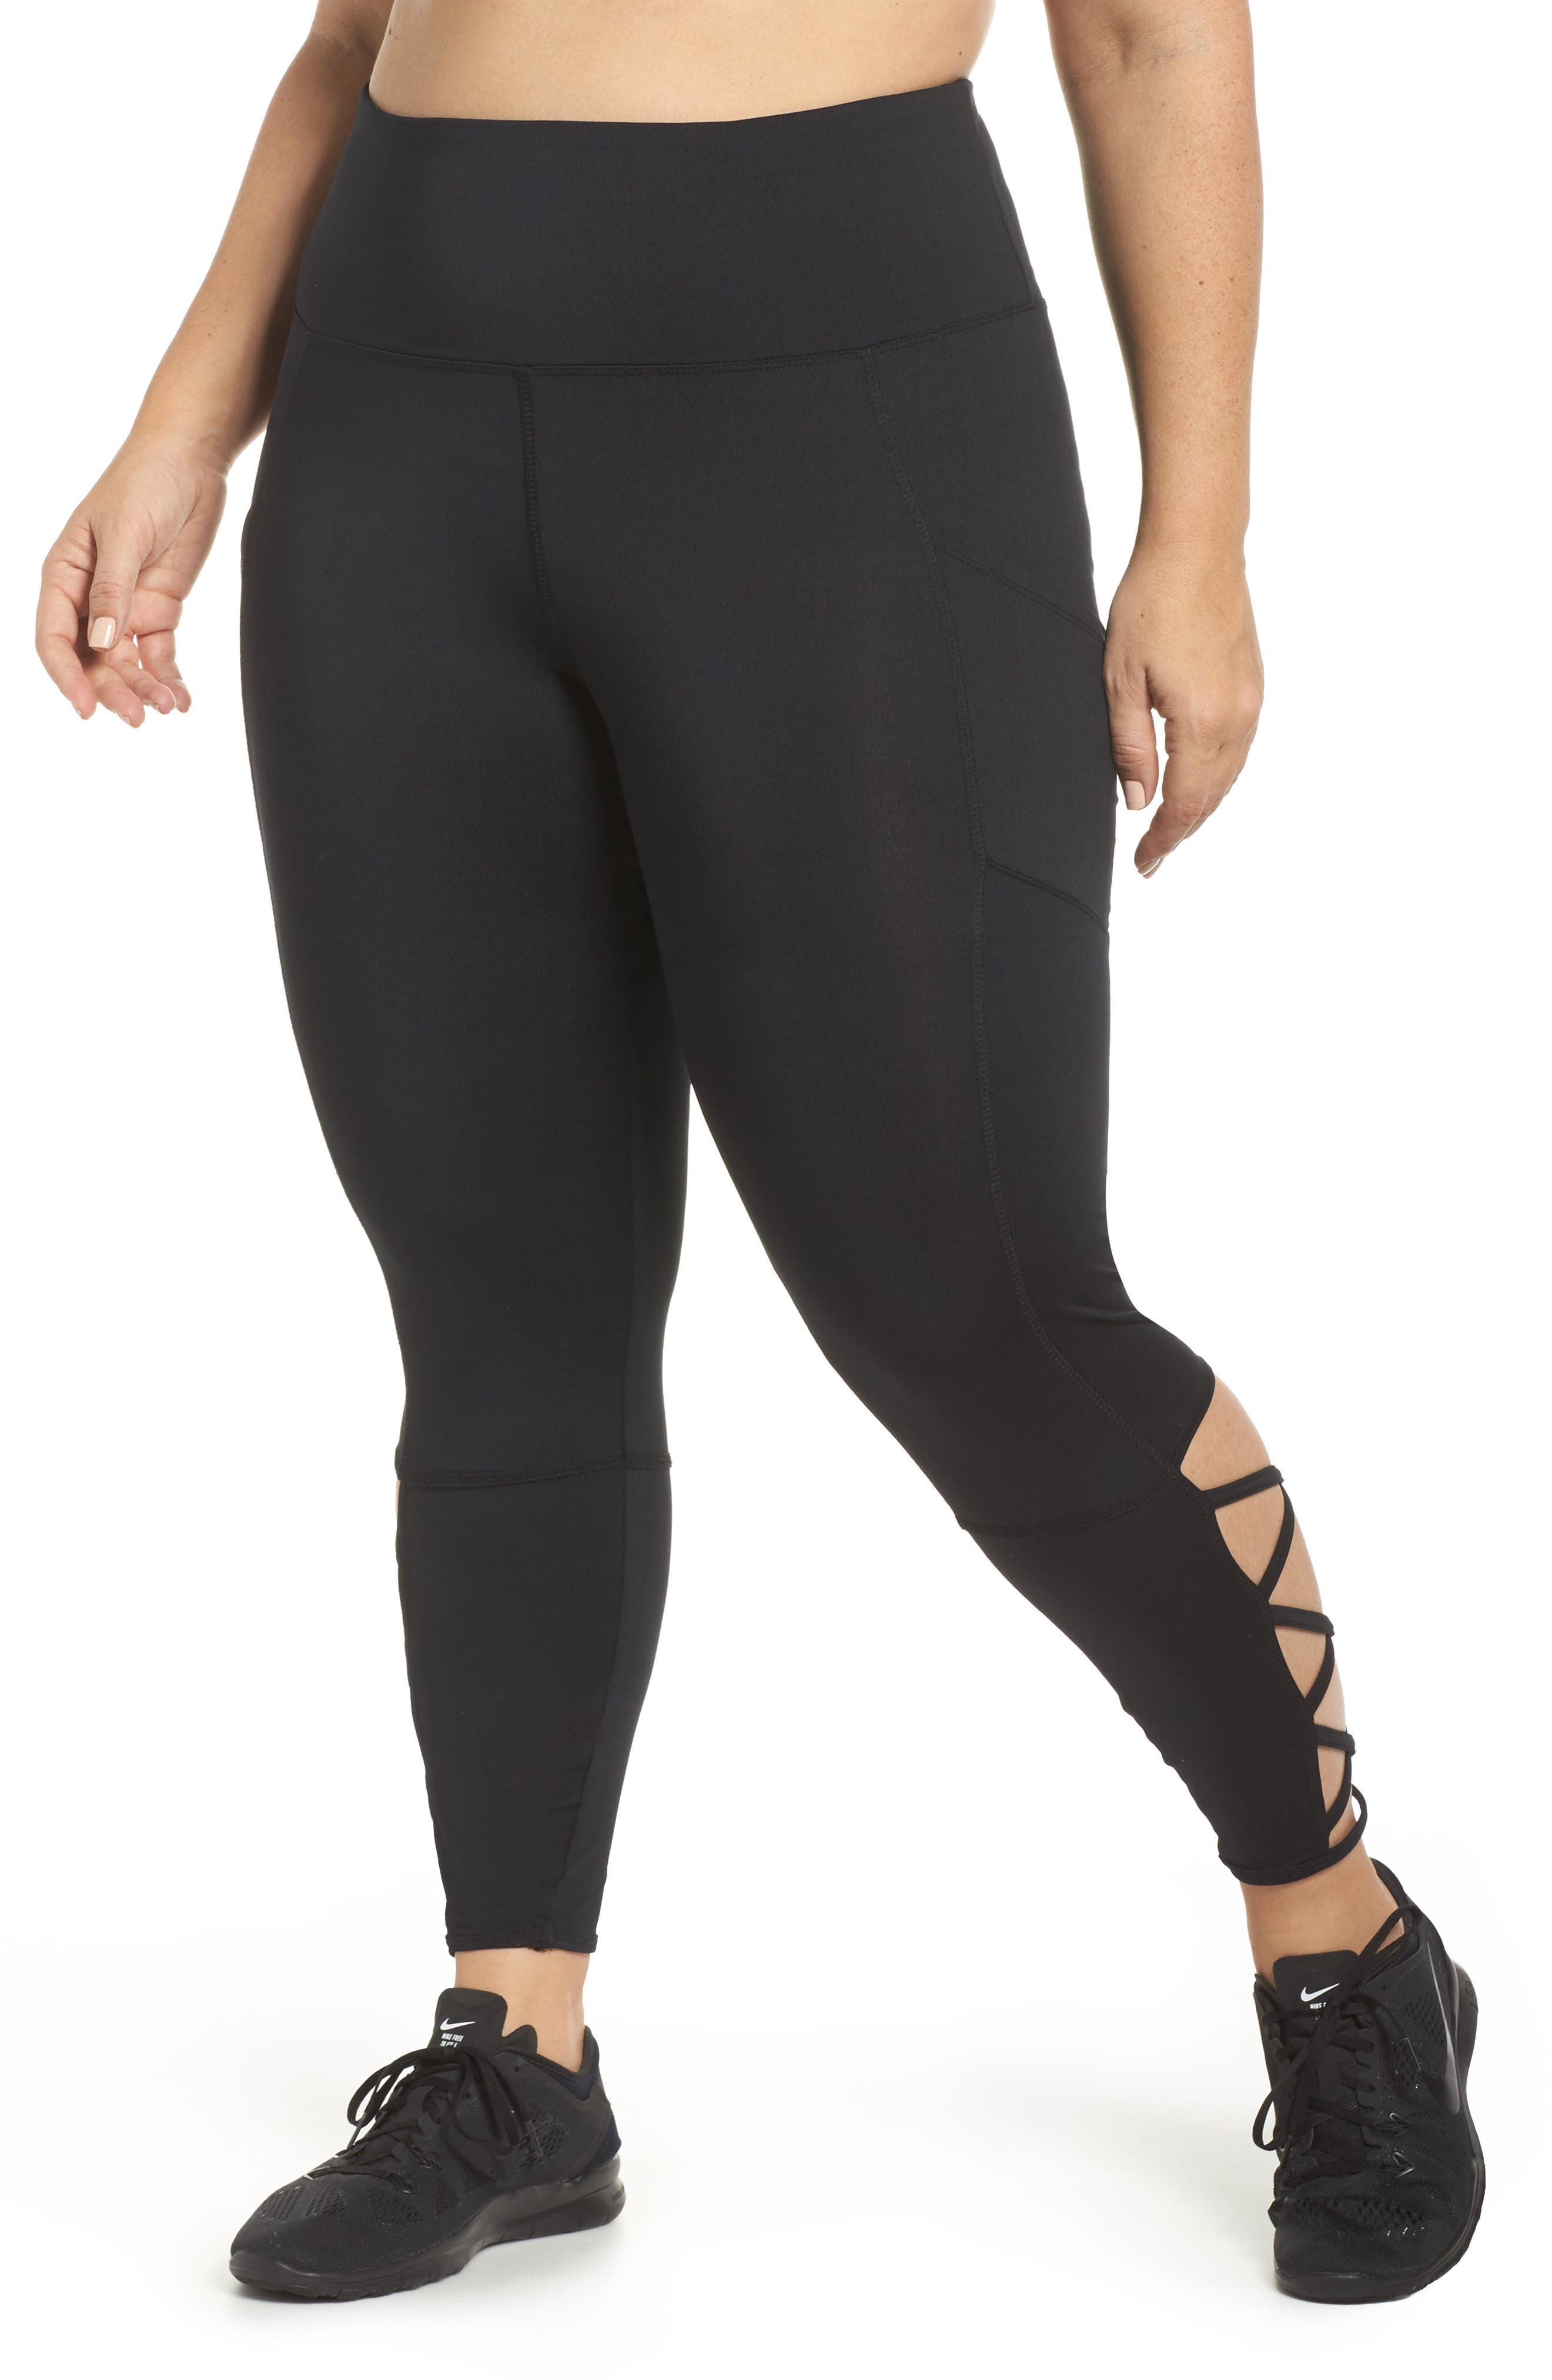 Lux Ankle Leggings,                             Main thumbnail 1, color,                             001